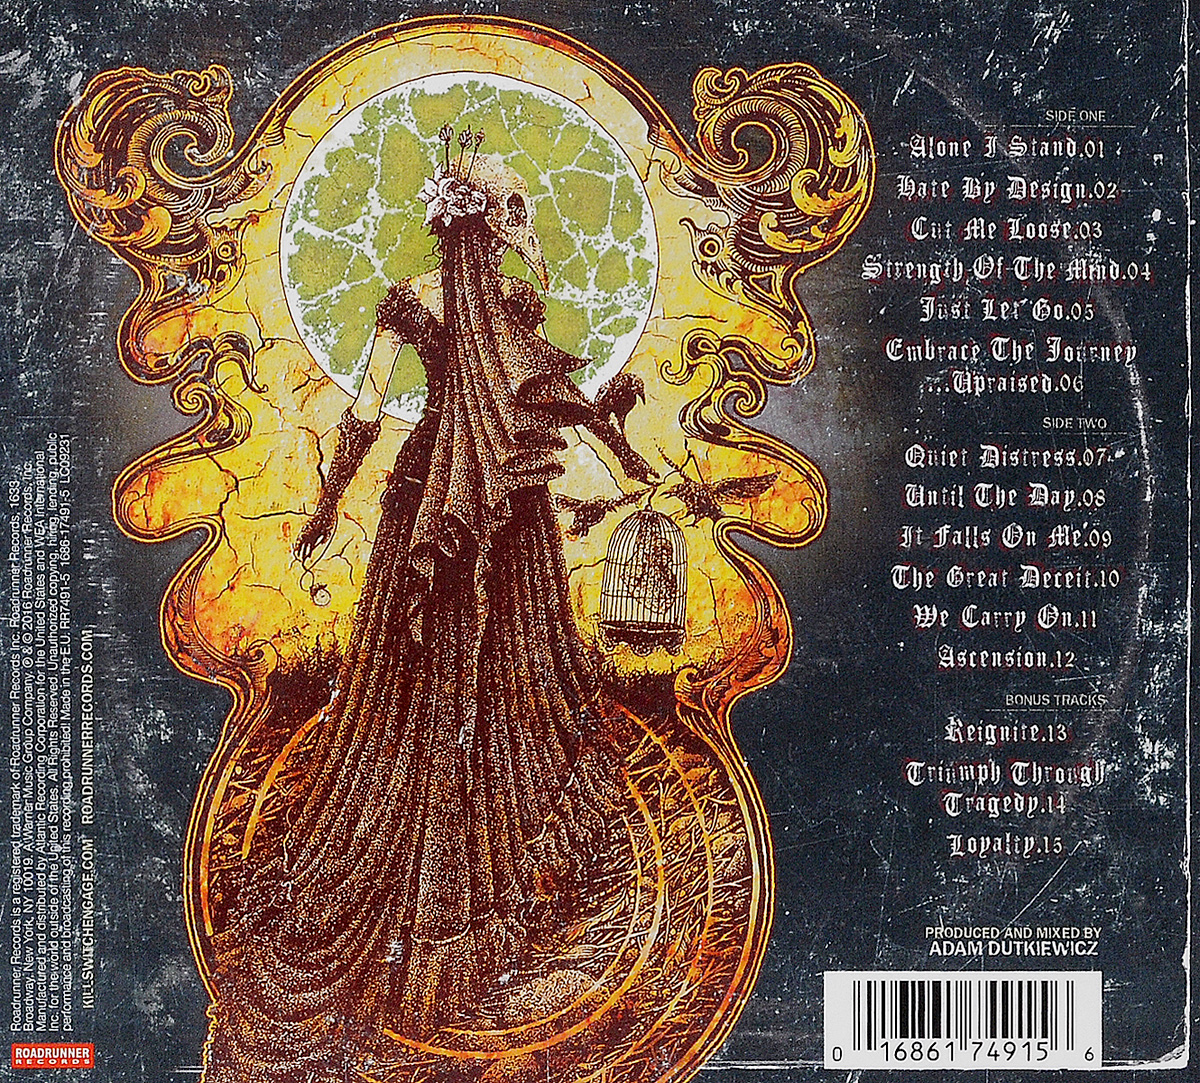 Killswitch Engage.  Incarnate.  Special Edition Warner Music,Roadrunner Records